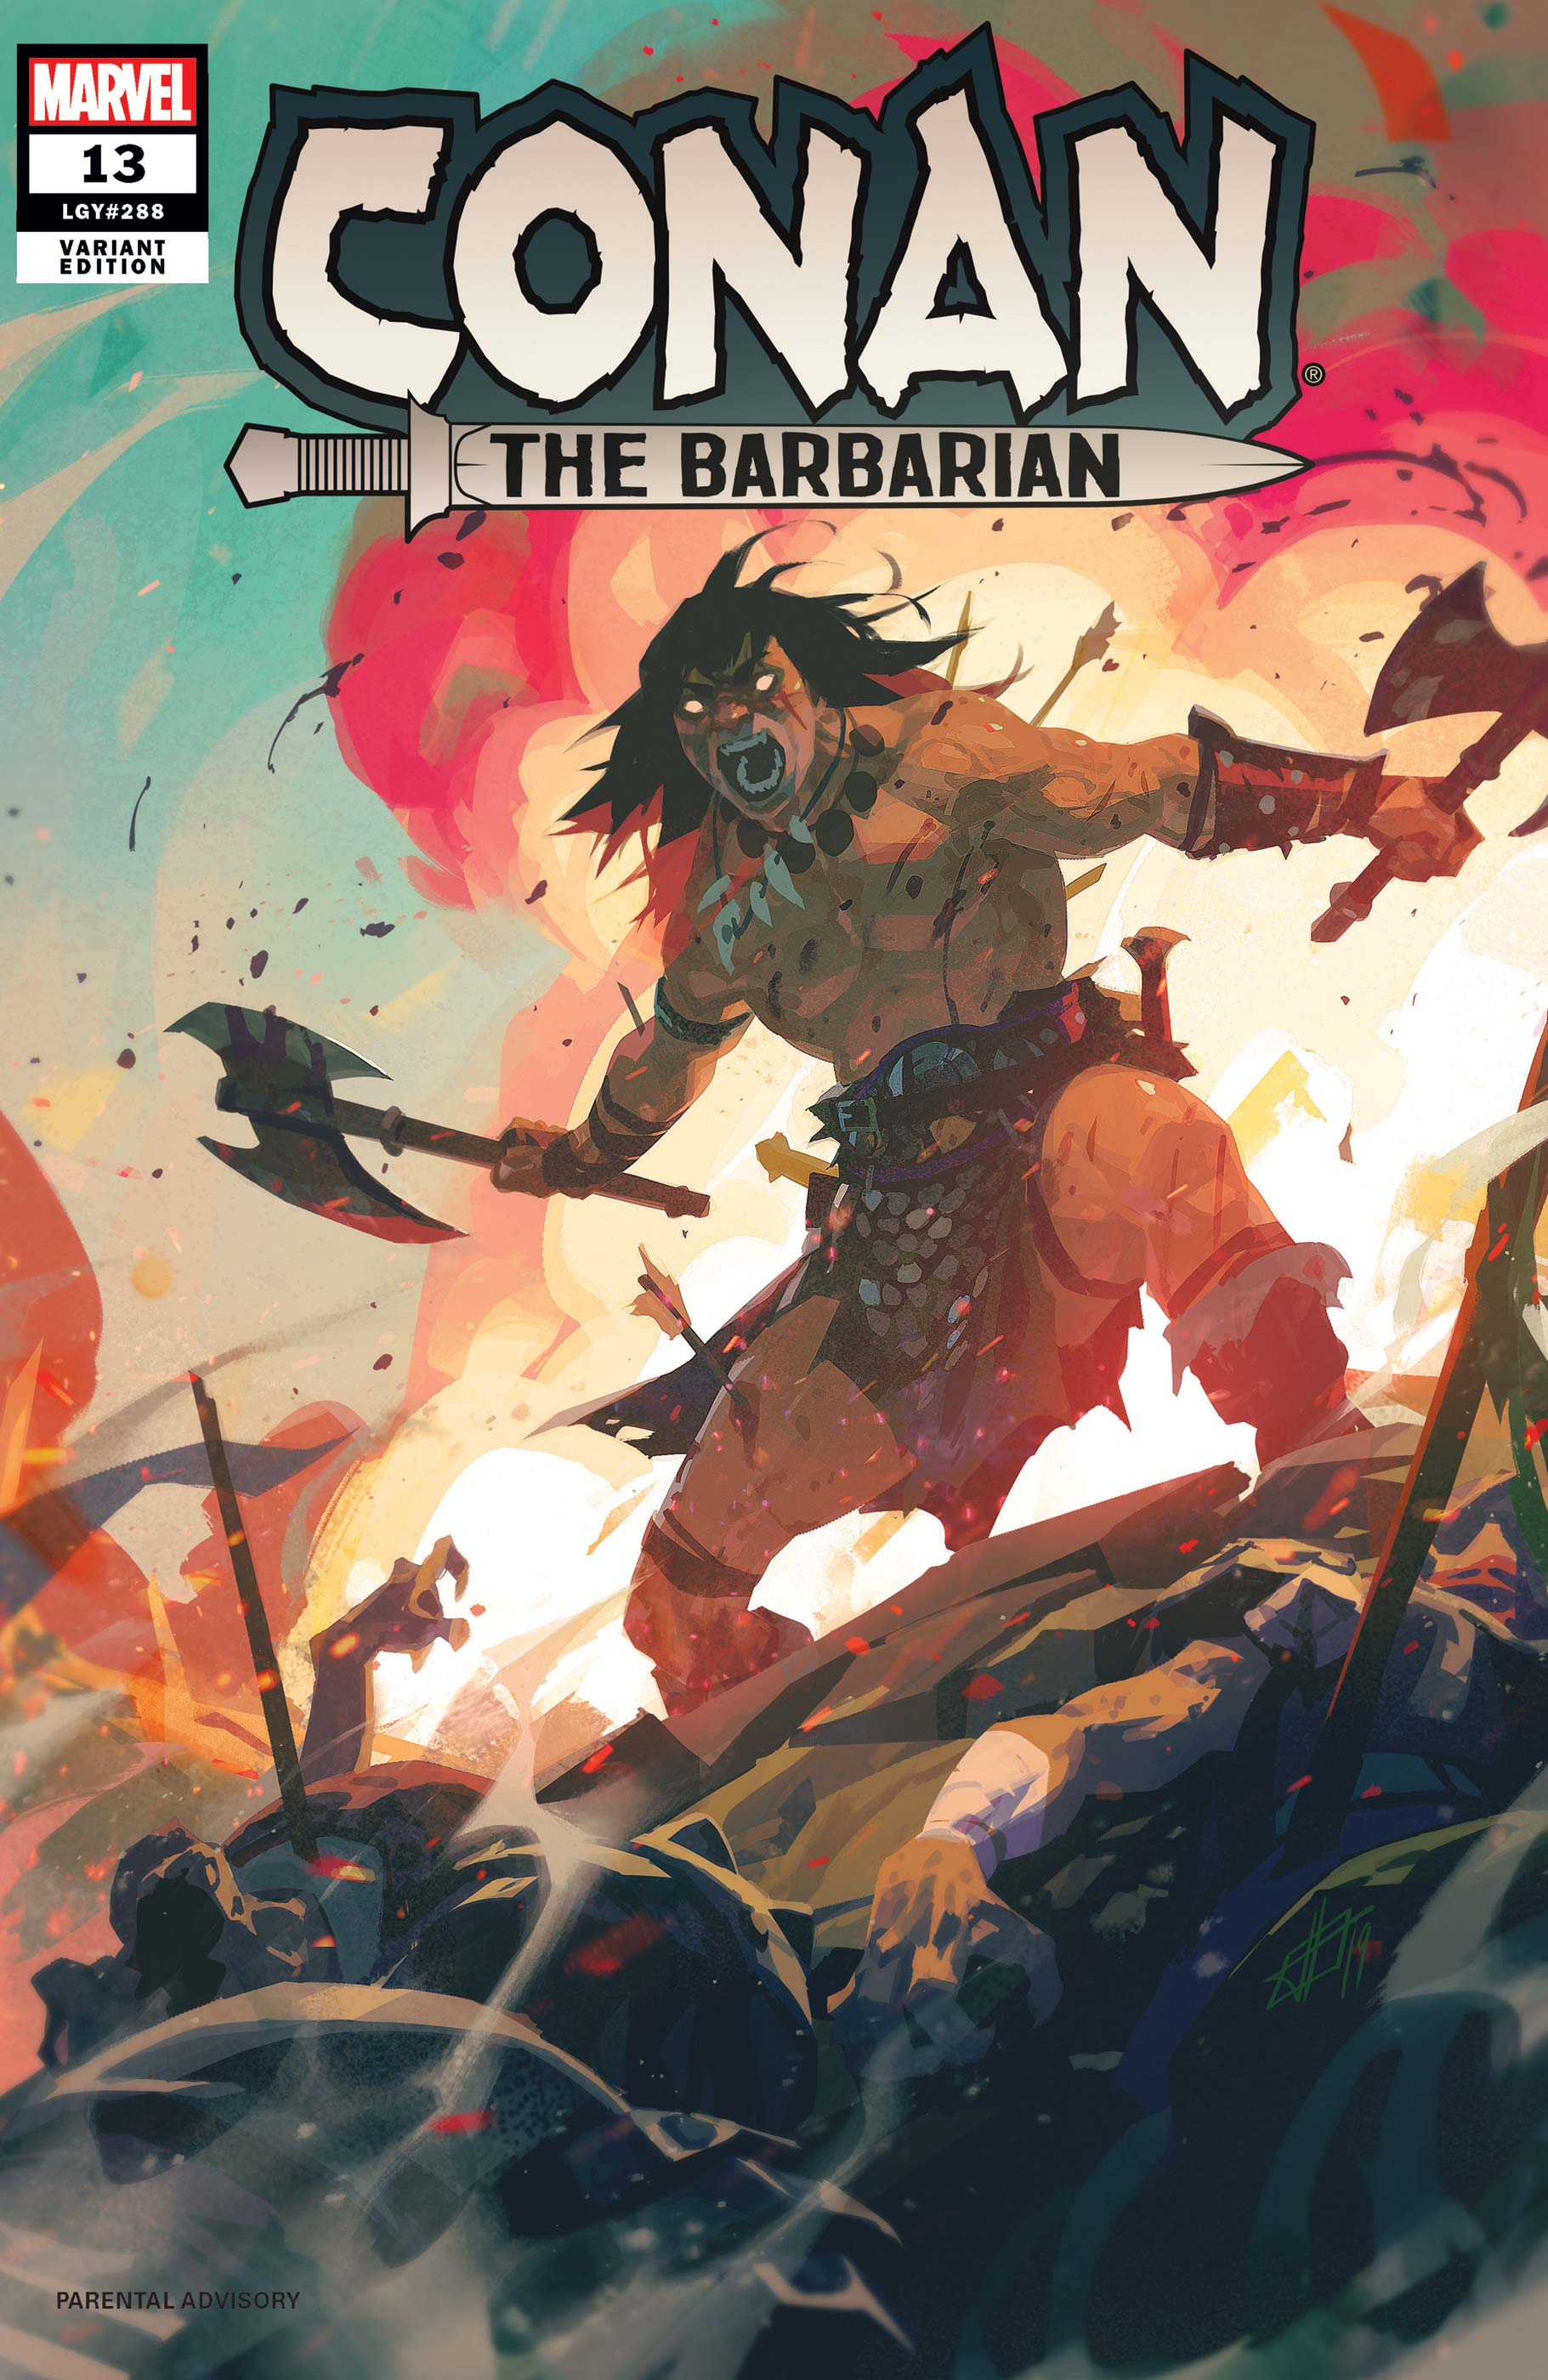 Conan the Barbarian (2019) #13 (Variant)